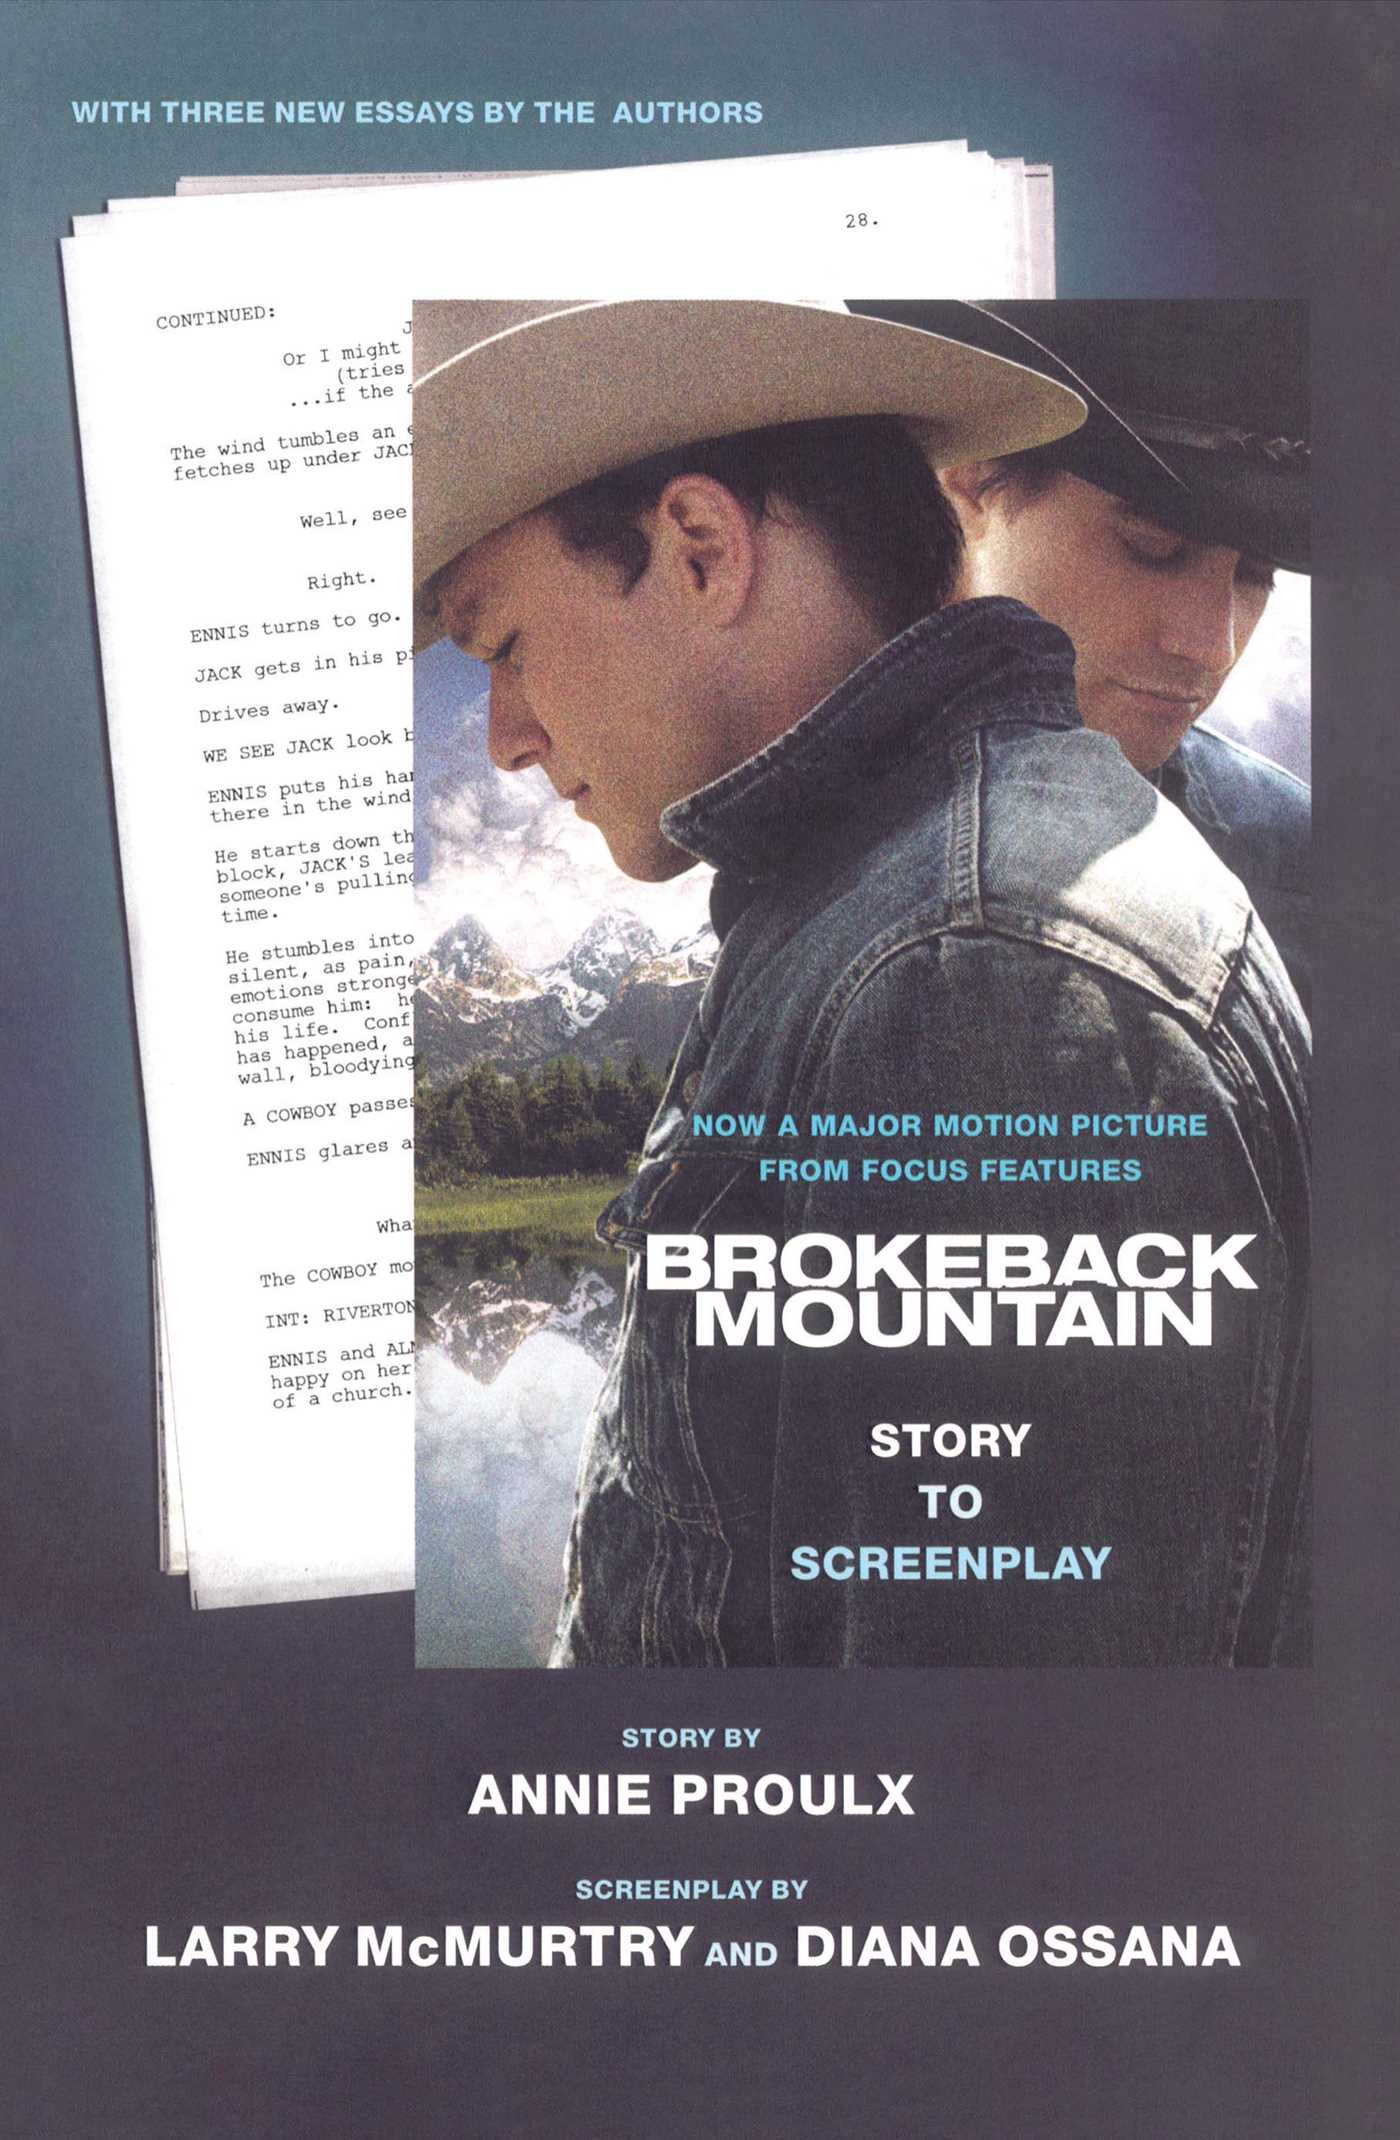 Brokeback mountain story to screenplay 9780743294164 hr